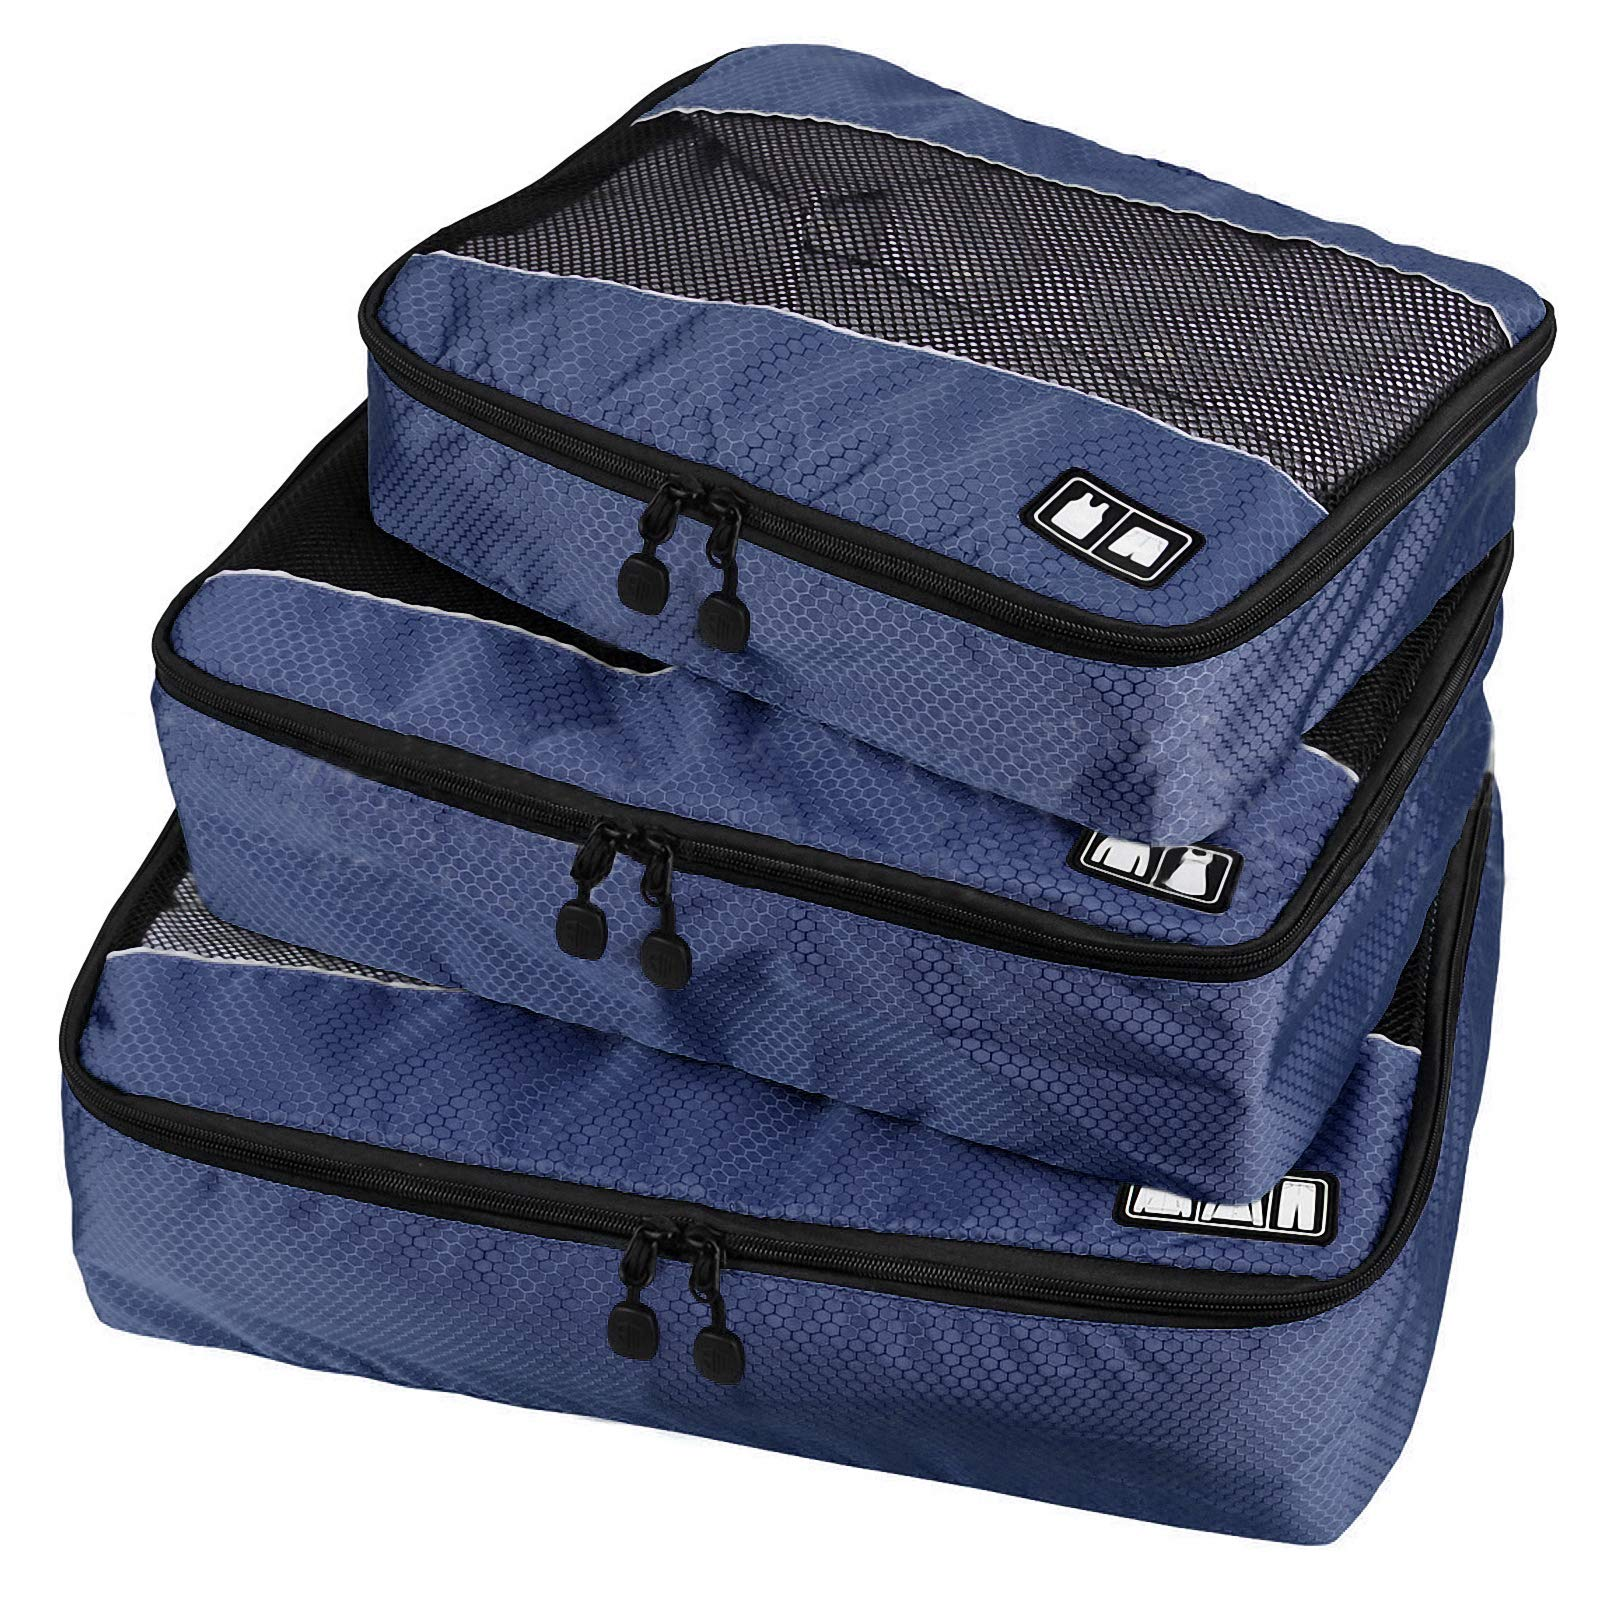 Packing Organizers - Clothing Cubes Shoe Bags Laundry Pouches For Travel Suitcase Luggage, Storage Organizer 3 Set Color Navy